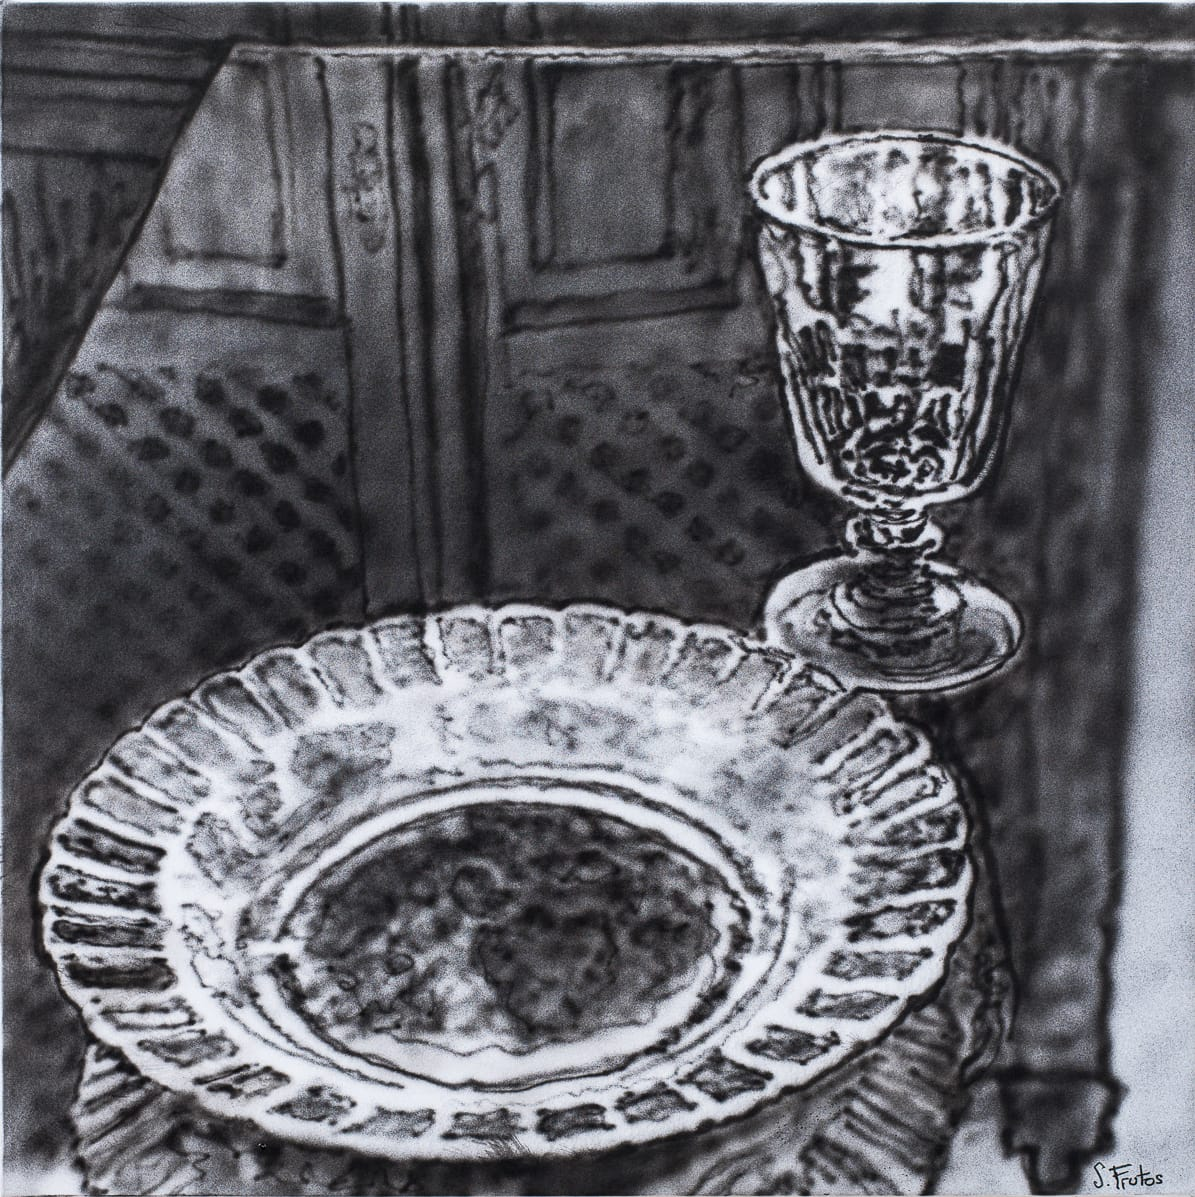 Glass and dish. Ink on paper, 30 x 30 cm, 2018